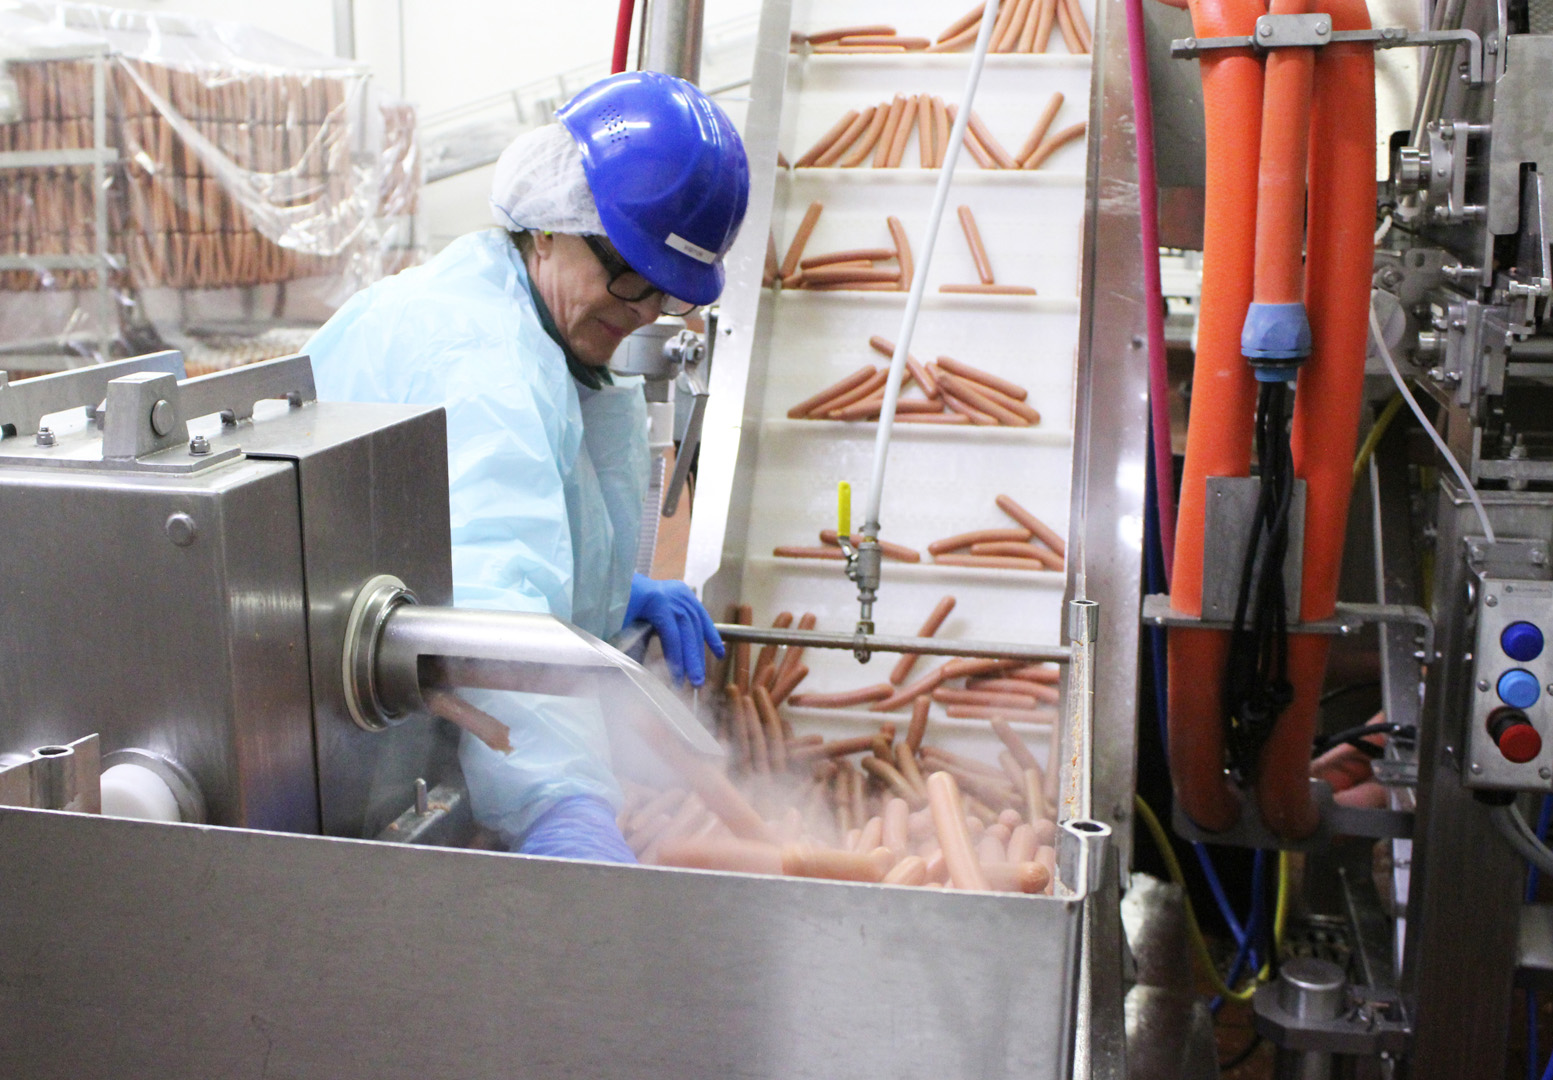 This CEO will learn the ins and outs of hot-dog peeling while undercover.